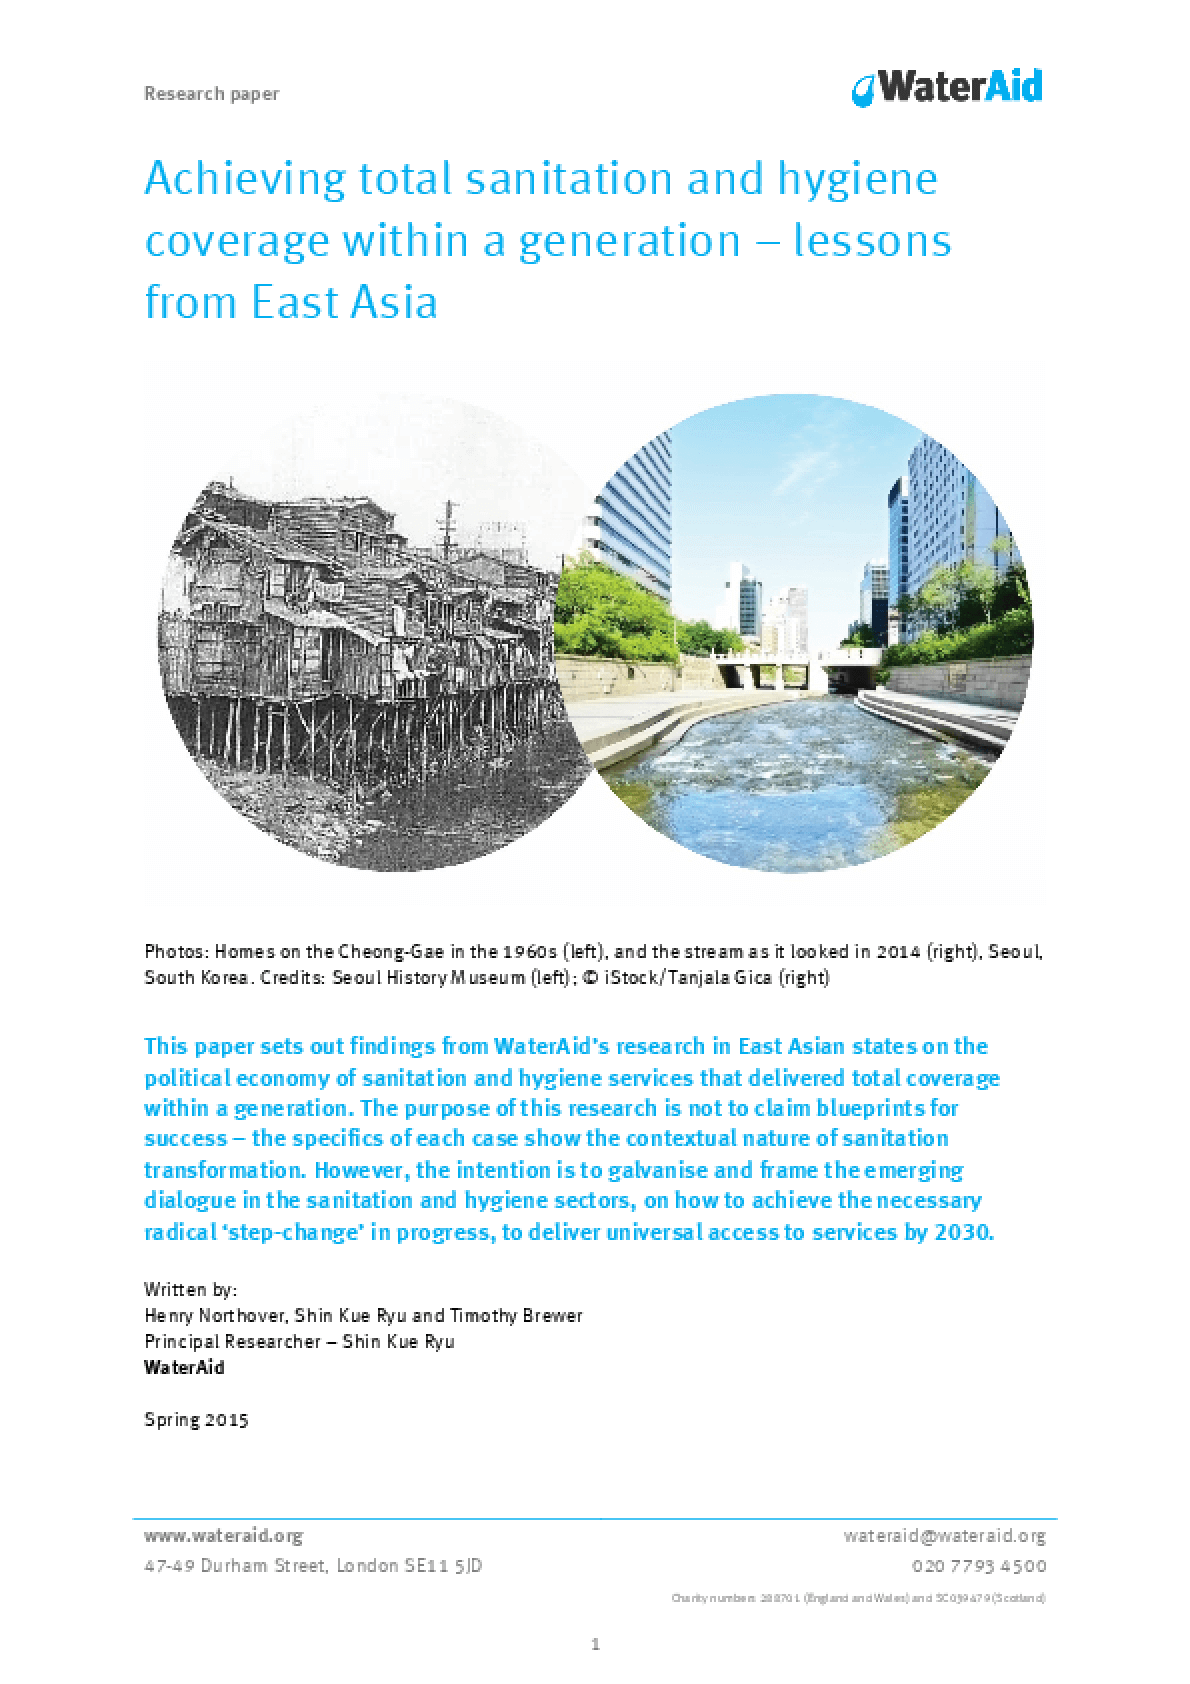 Achieving Total Sanitation and Hygiene Coverage Within a Generation -- Lessons From East Asia